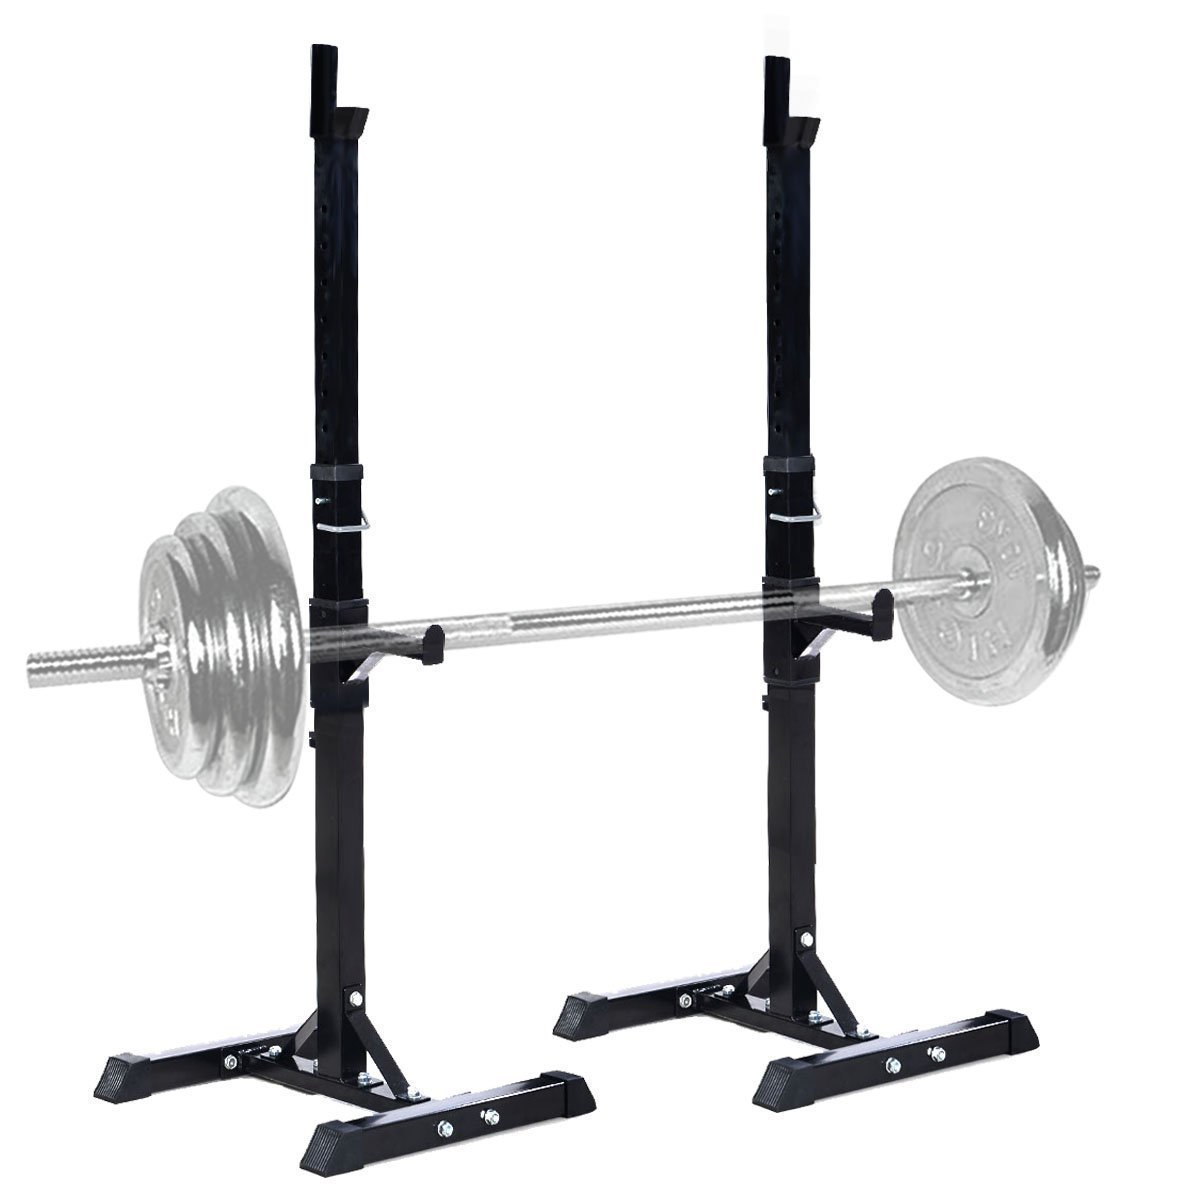 Gymax Adjustable Weight Dumbbell Barbell Rack Fitness Weight Lifting Gym Barbell Squat Rack Stand for men women by Gymax